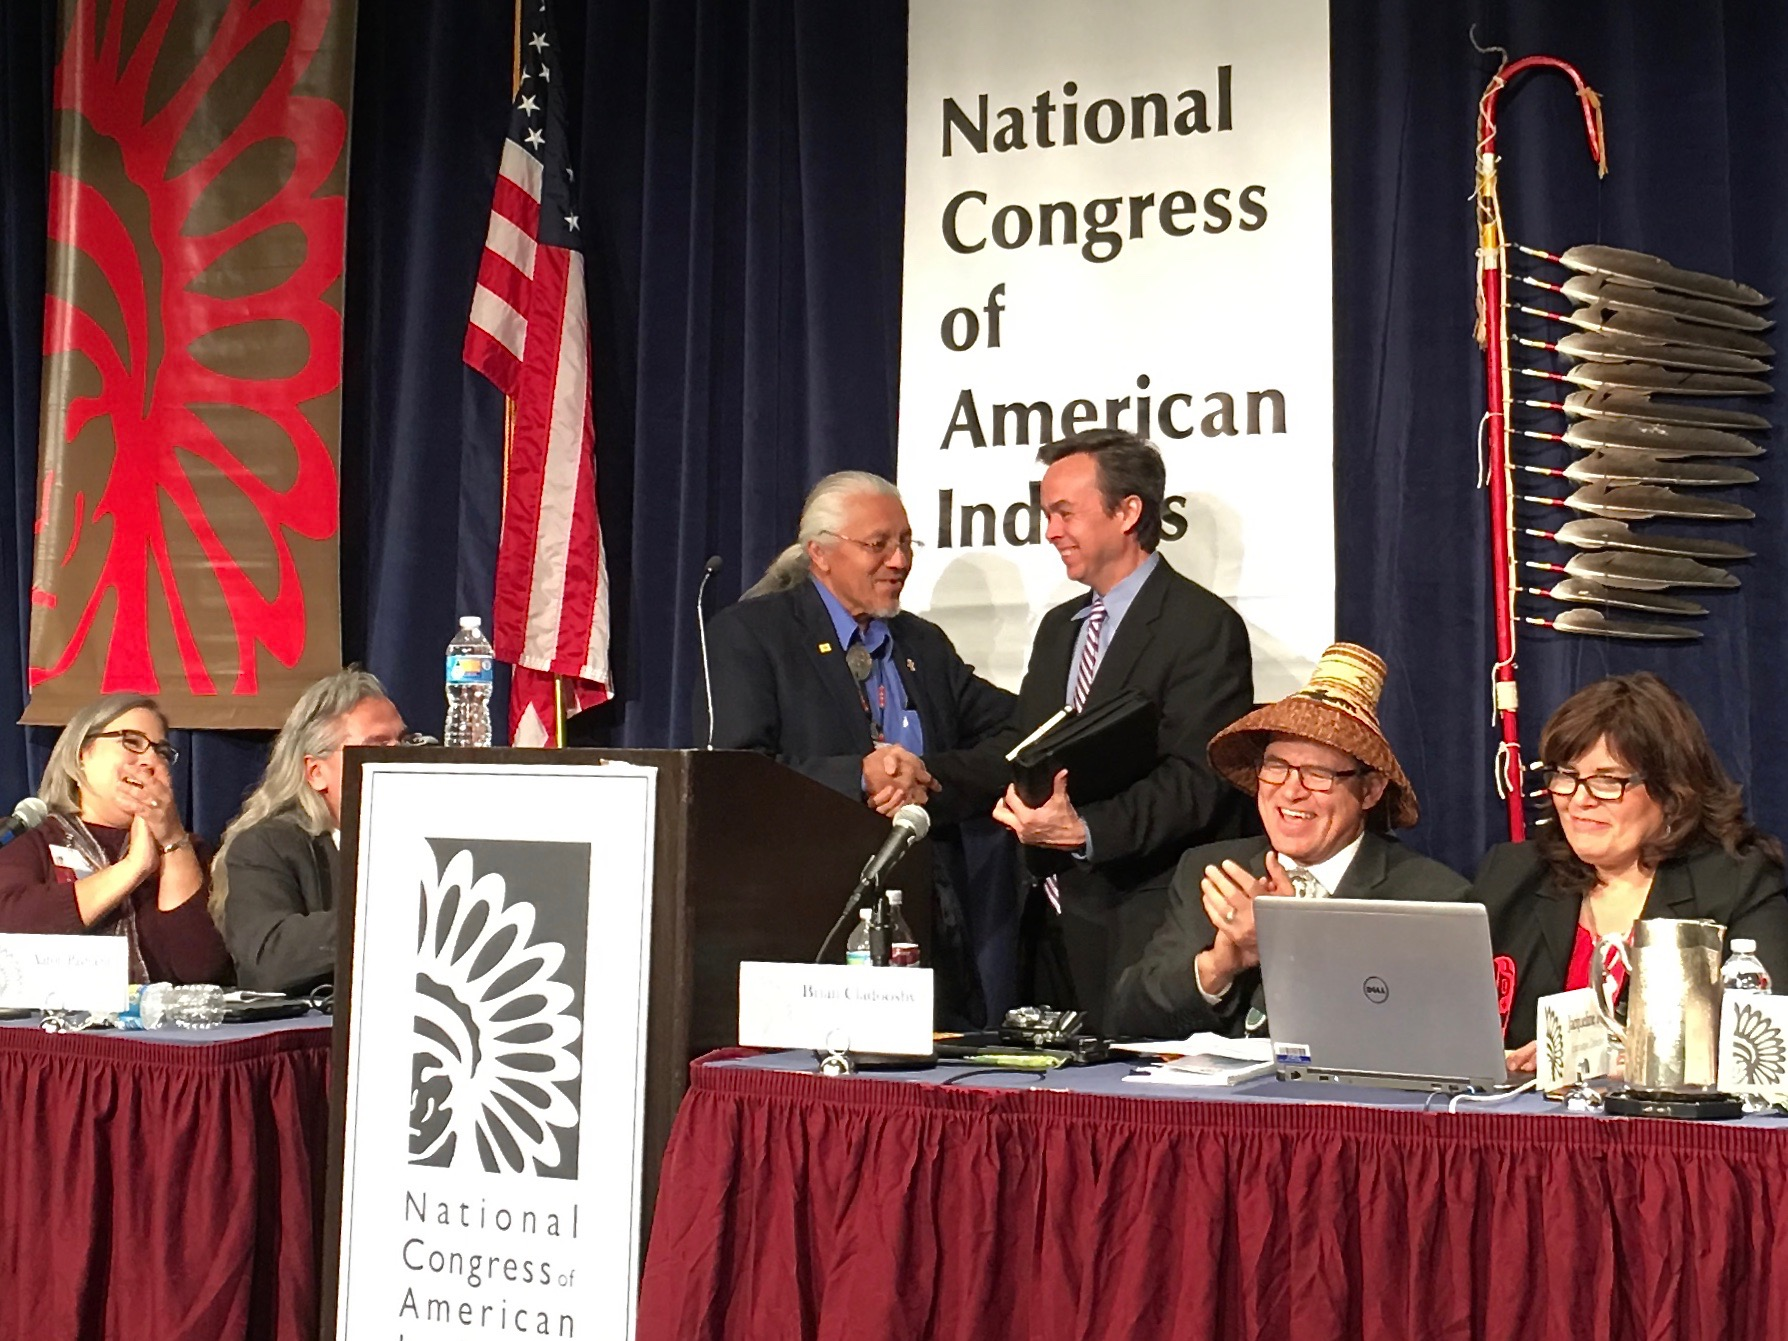 Bureau of Indian Affairs finalizes tweak to land-into-trust process